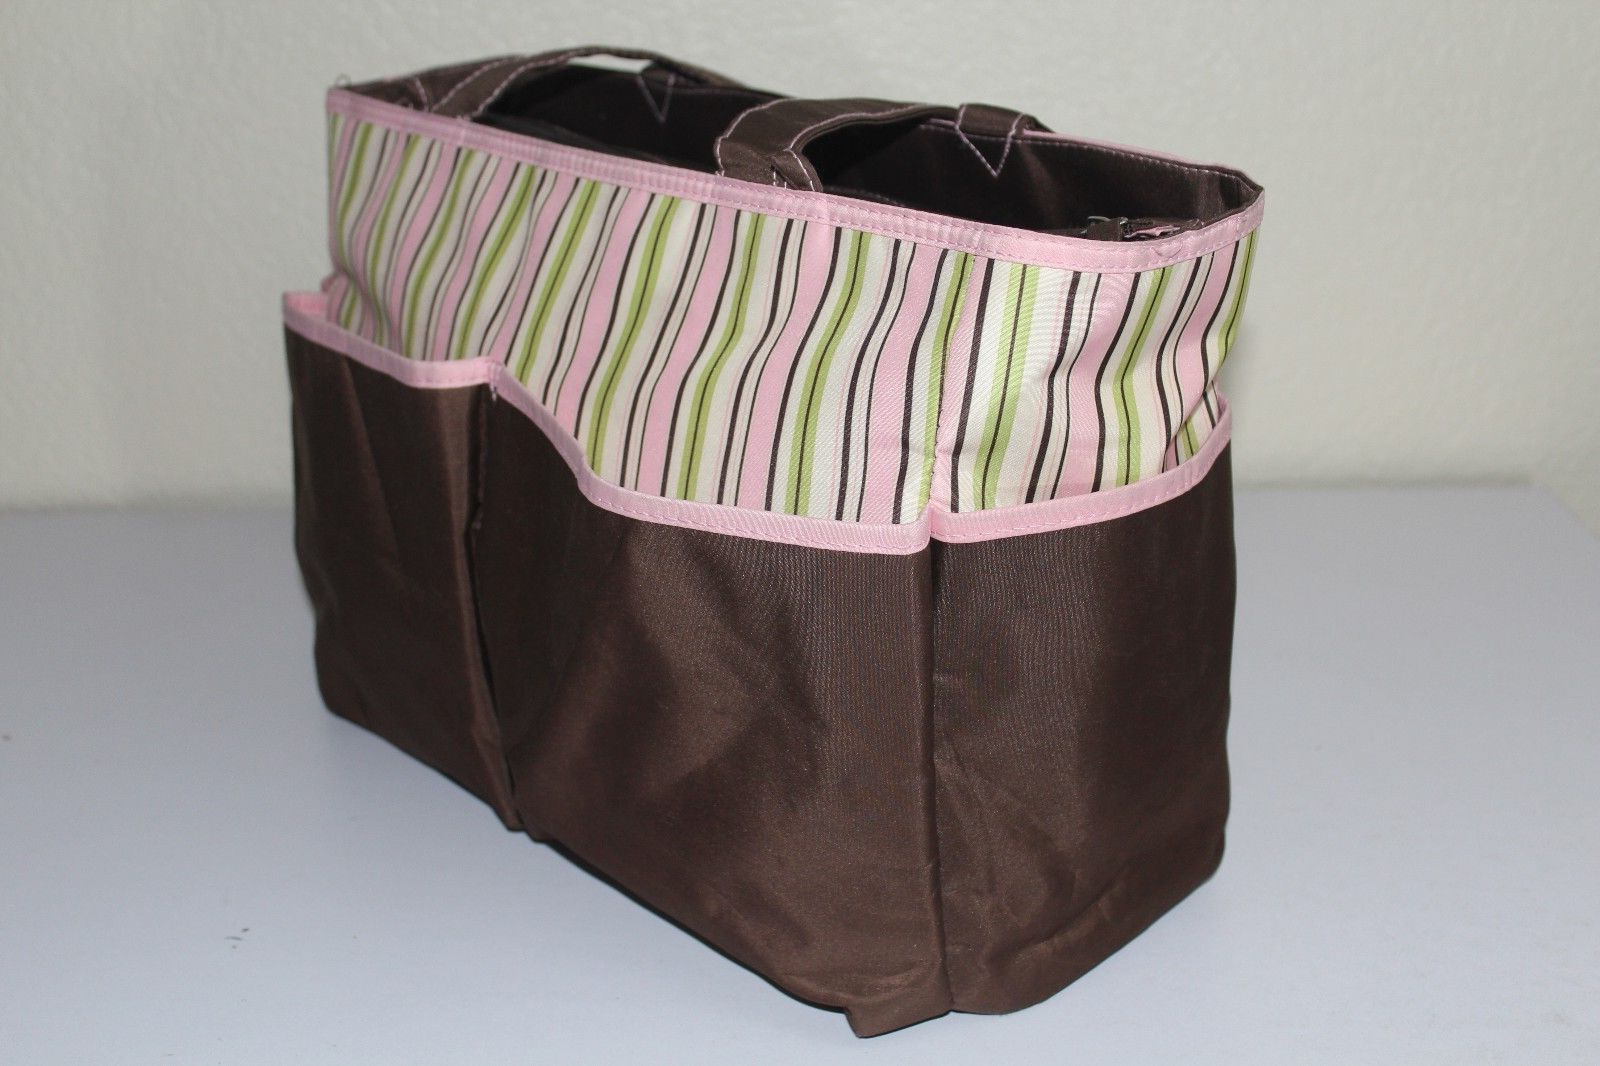 babies r us diaper bags handbags and purses on bags. Black Bedroom Furniture Sets. Home Design Ideas